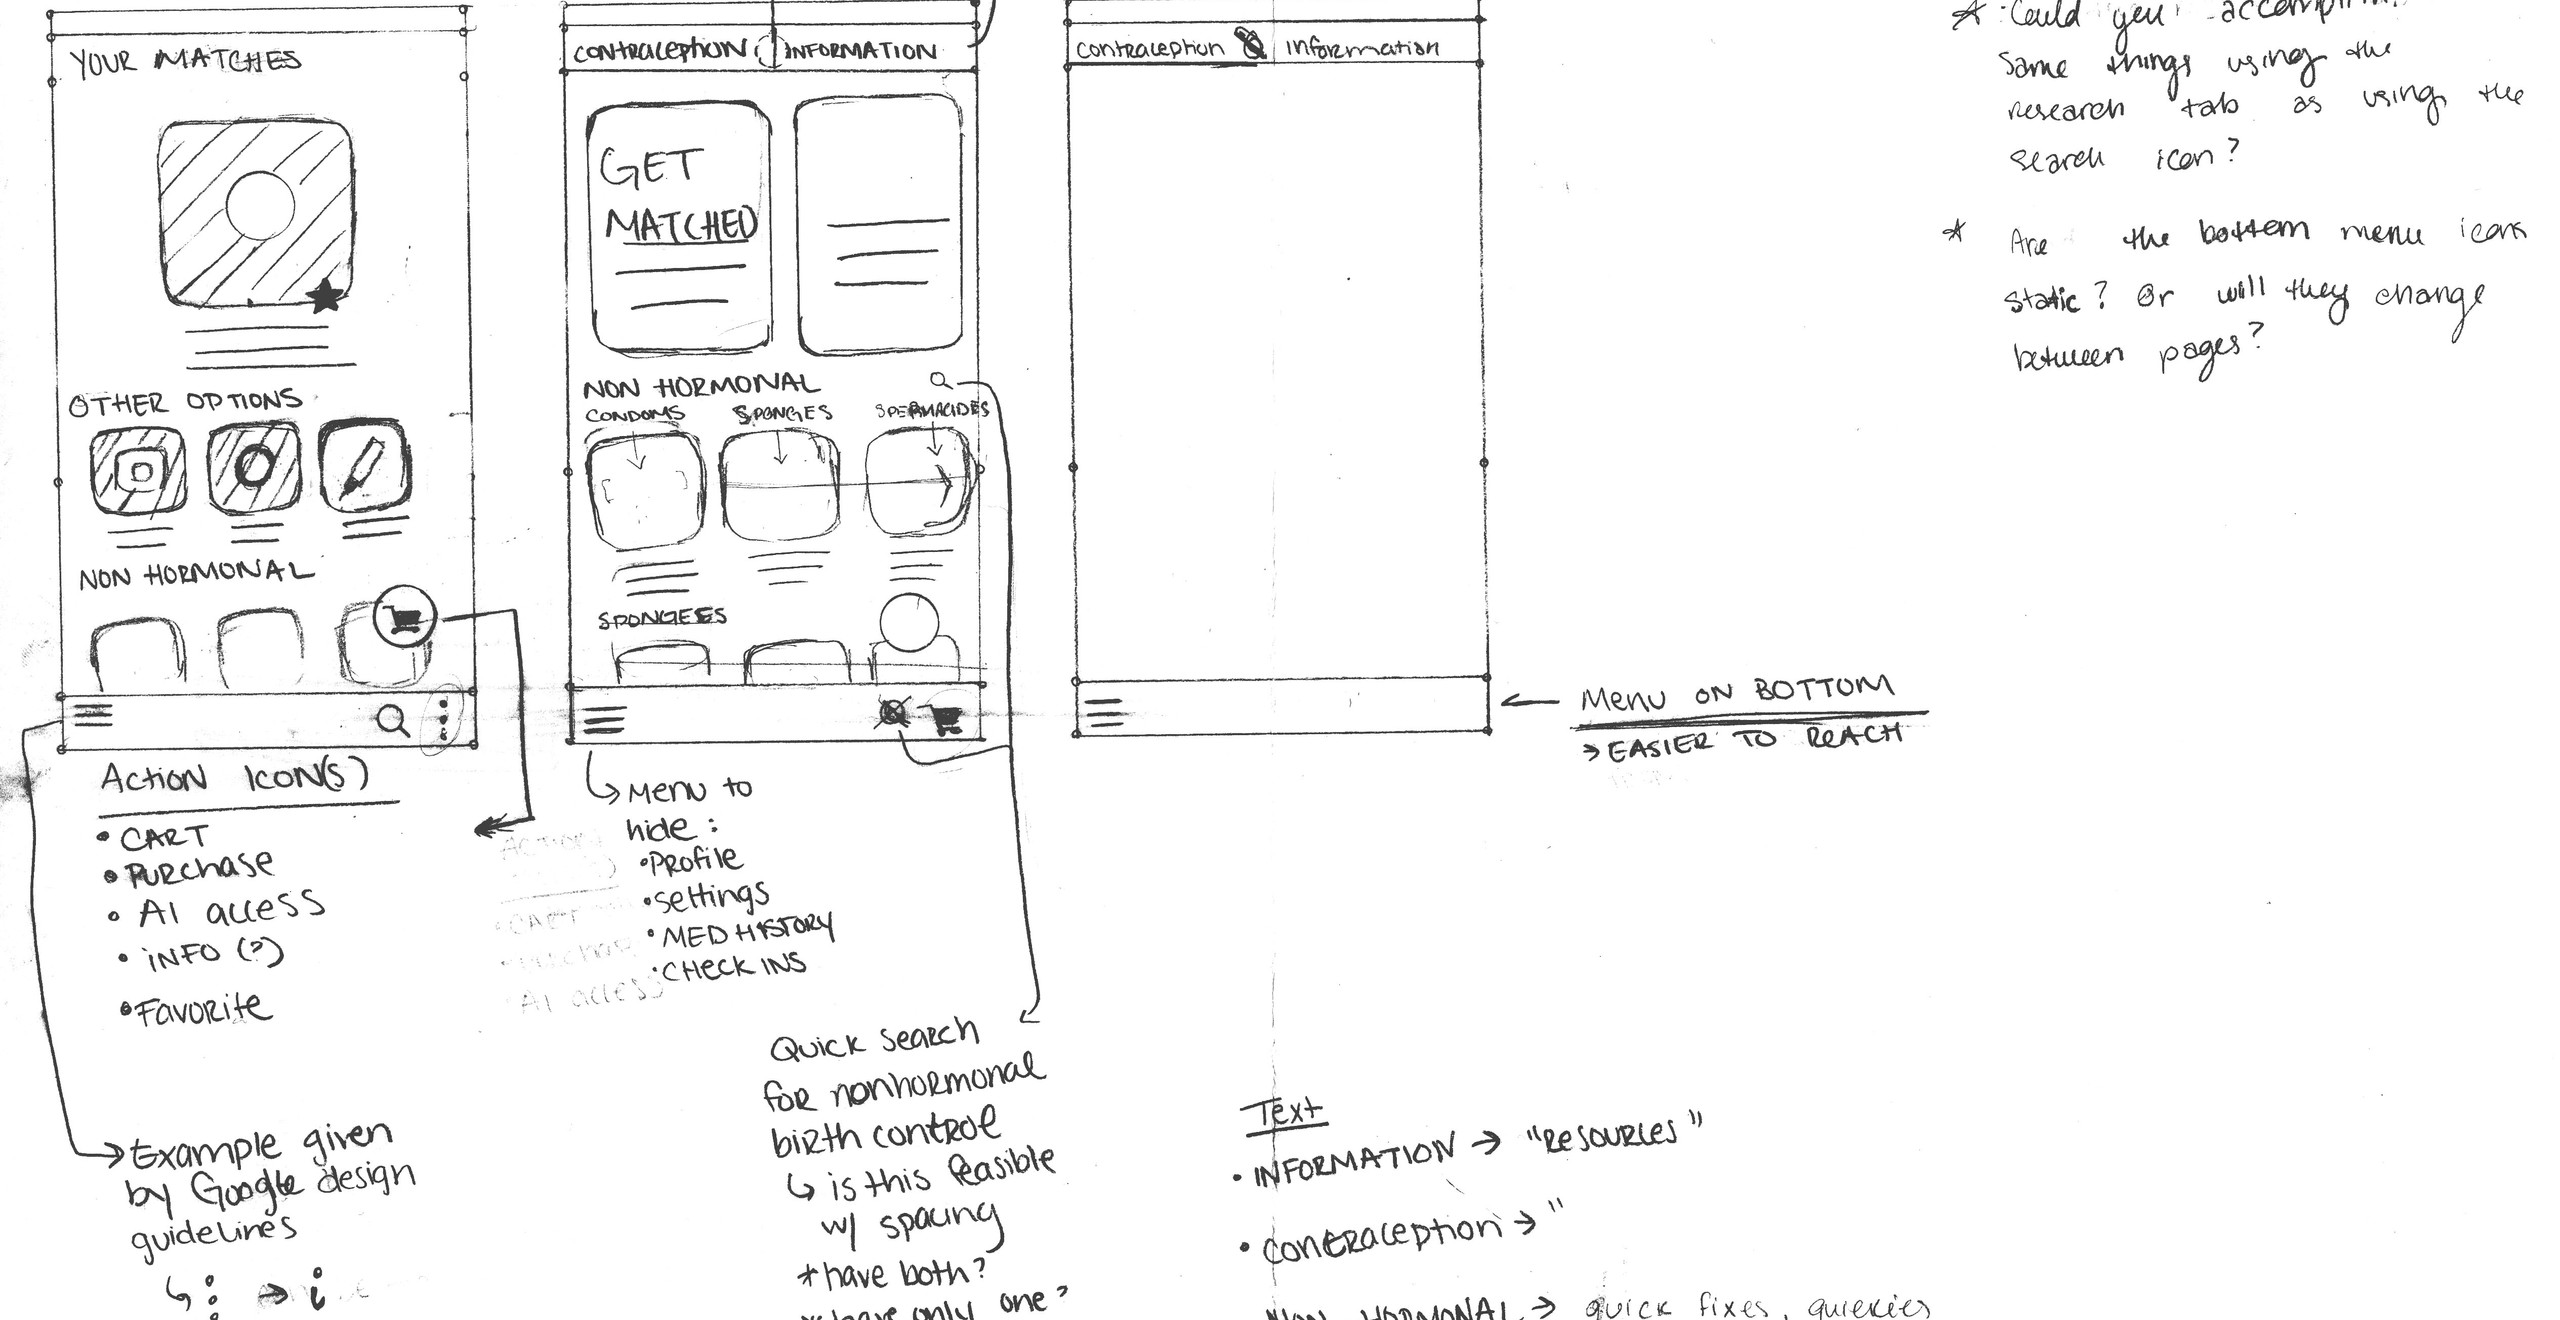 A series of sketches showing the original design layout of the Rosmi app